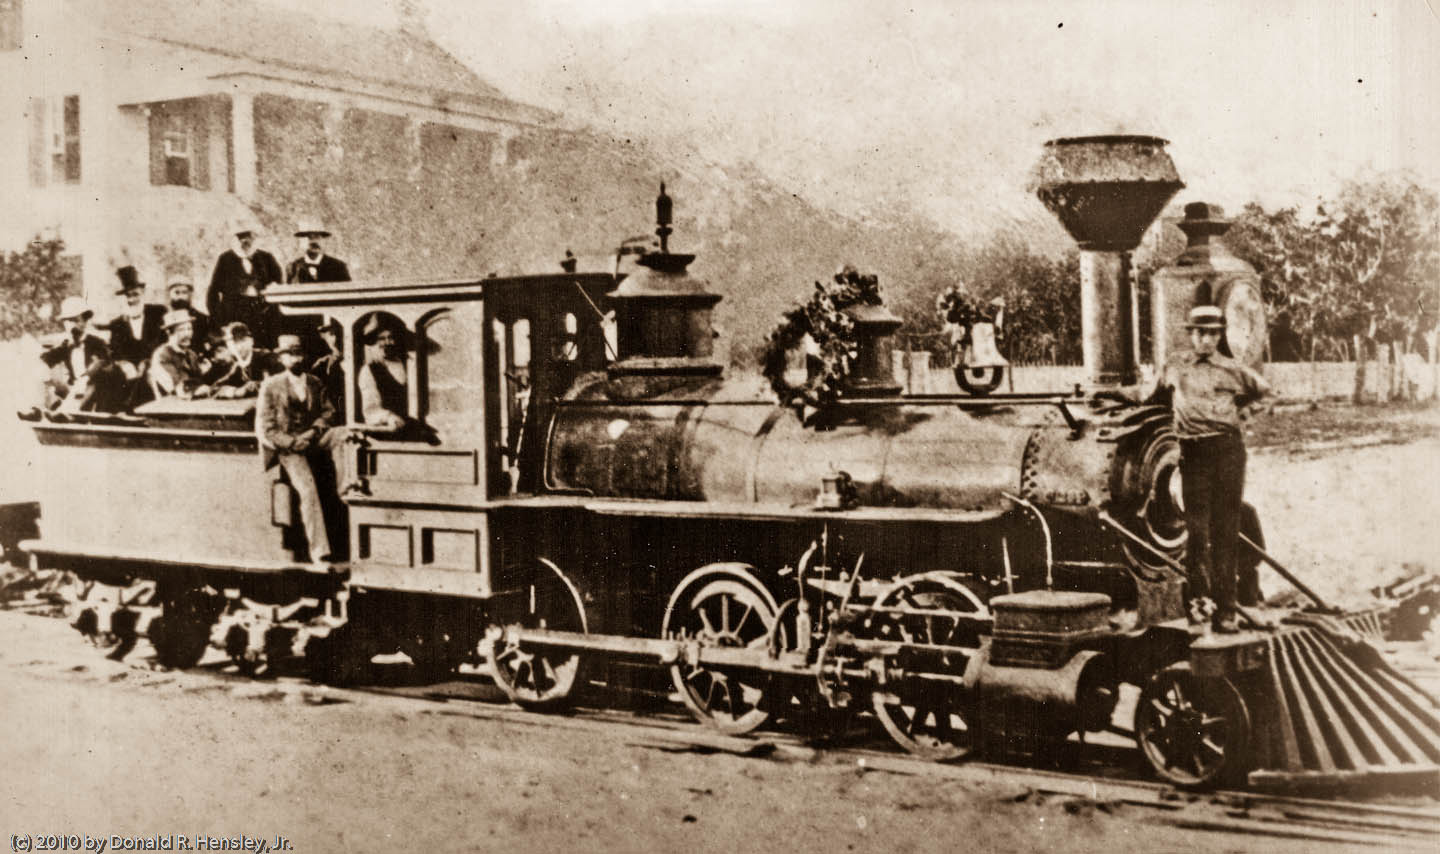 One of Florida Southern's first locomotives at Gainesville, Florida in 1881.